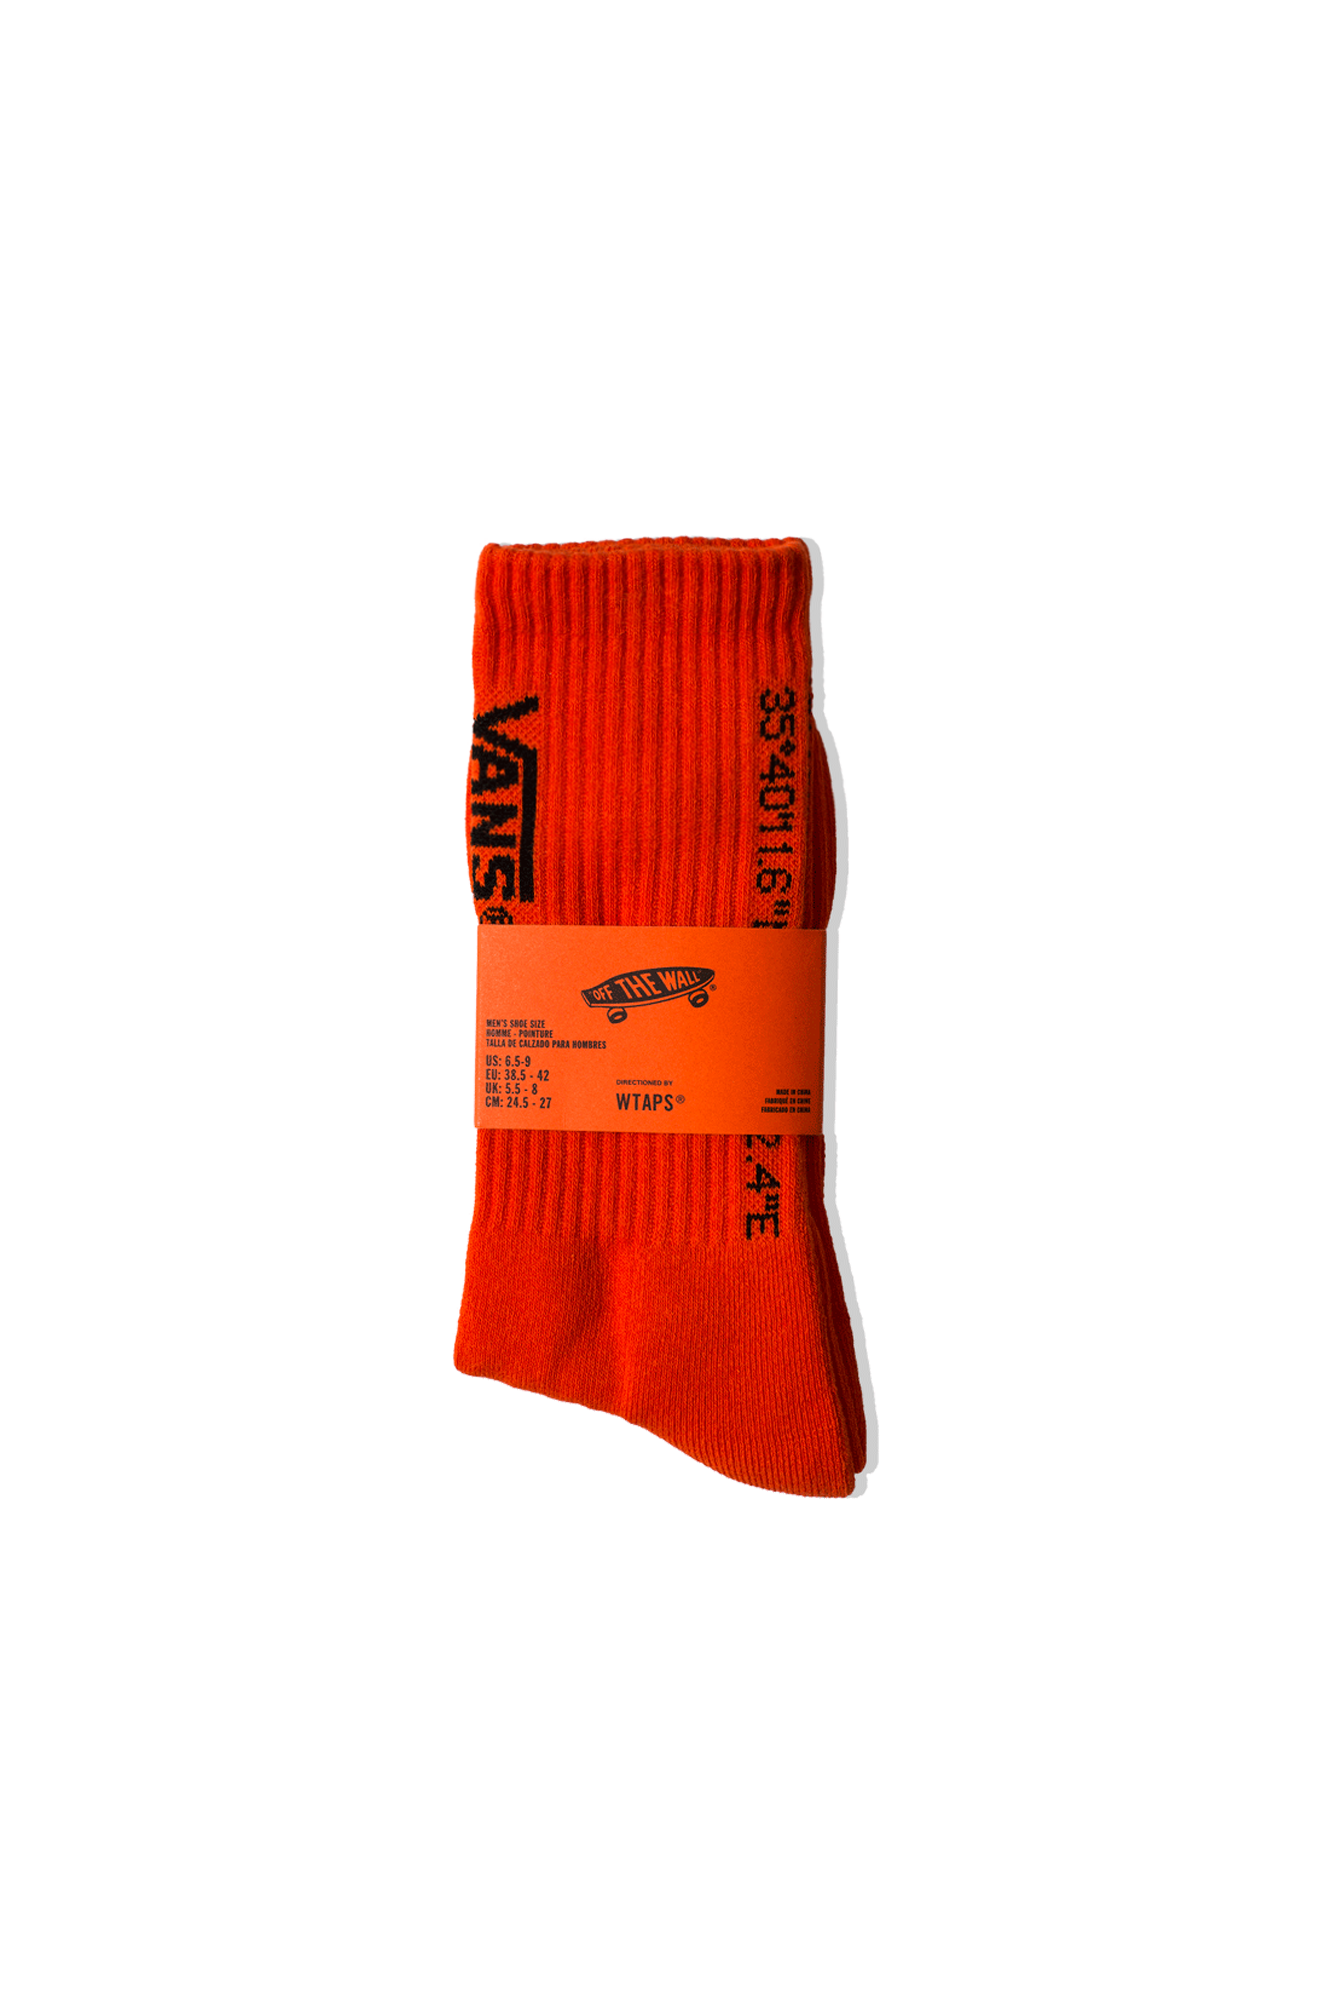 Vans Socks Coordinates Crew Socks x WTAPS Orange VN0A4TRG#ZXT1#C0005#OS - One Block Down